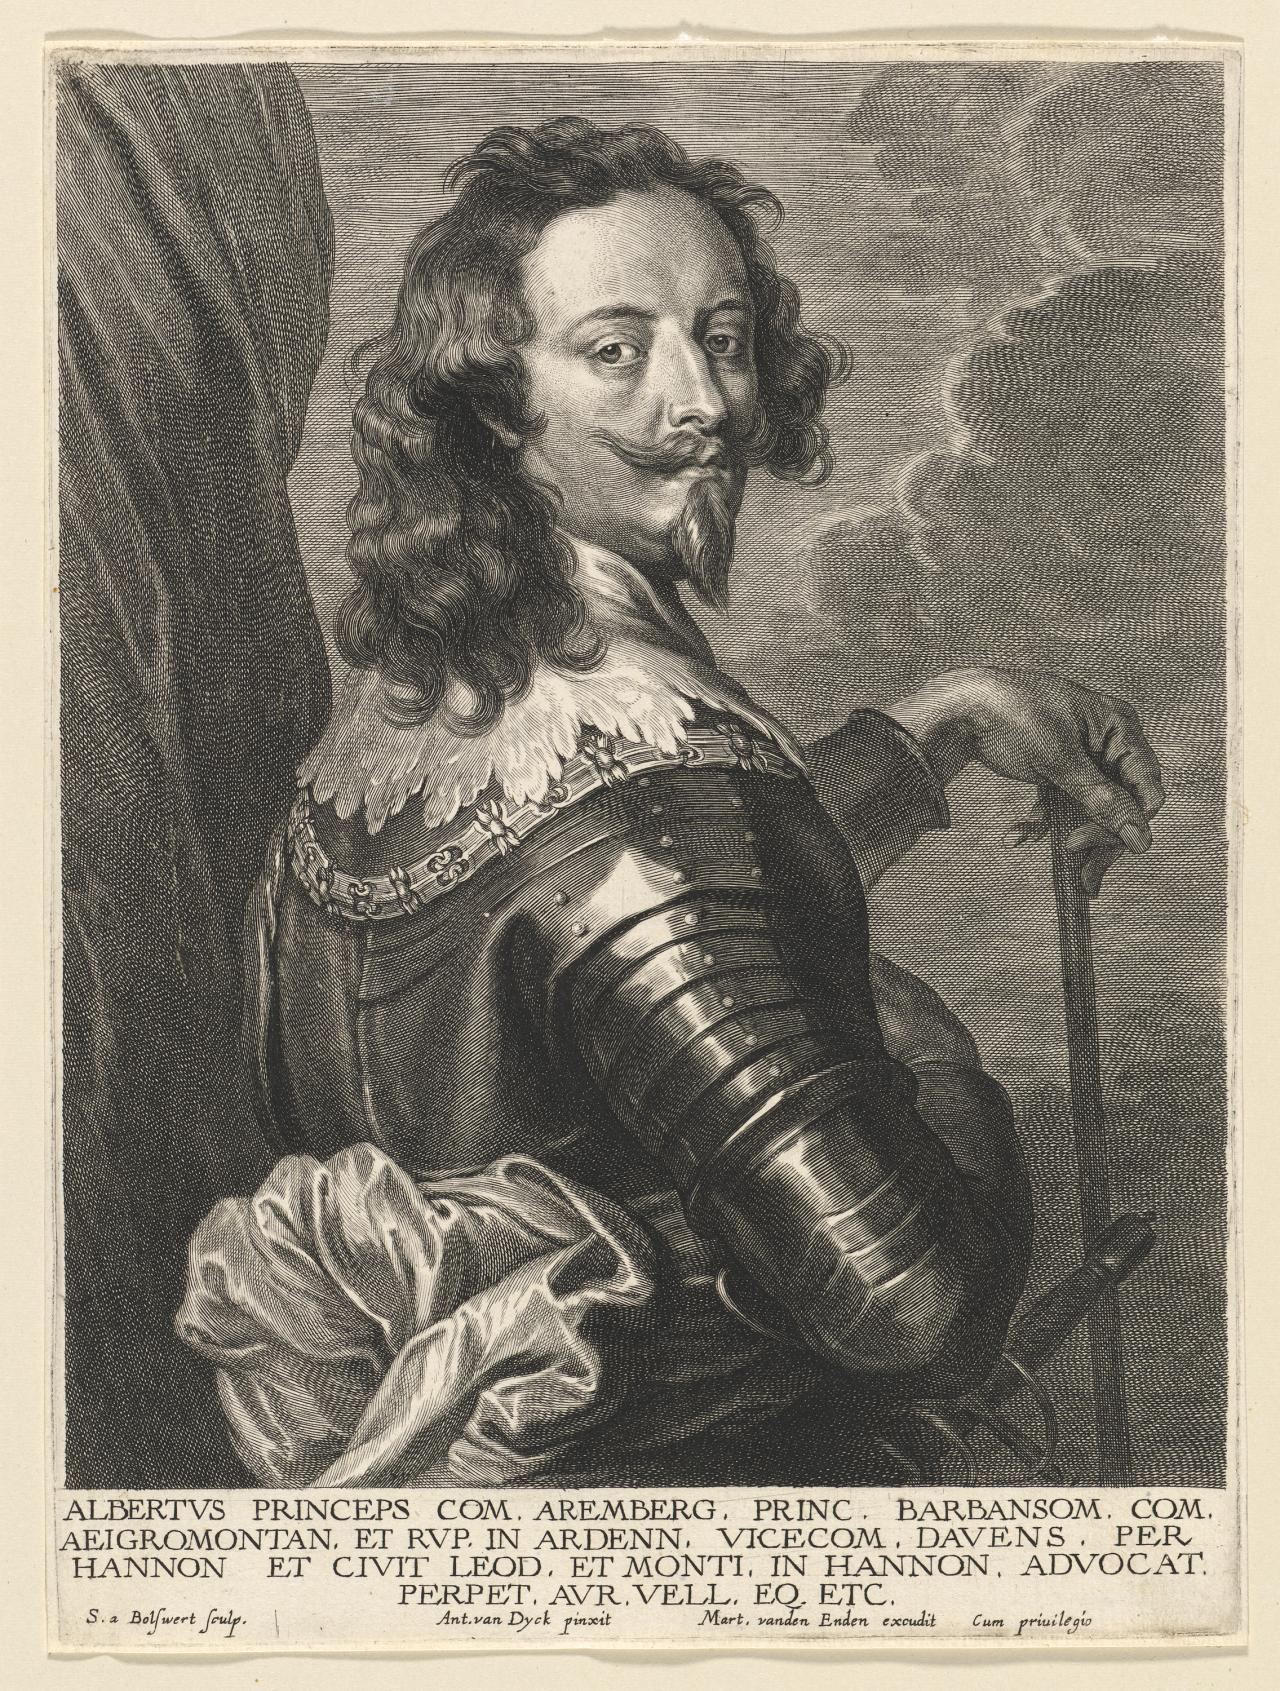 Albert de Ligne, Prince of Arenberg and  Barbançon